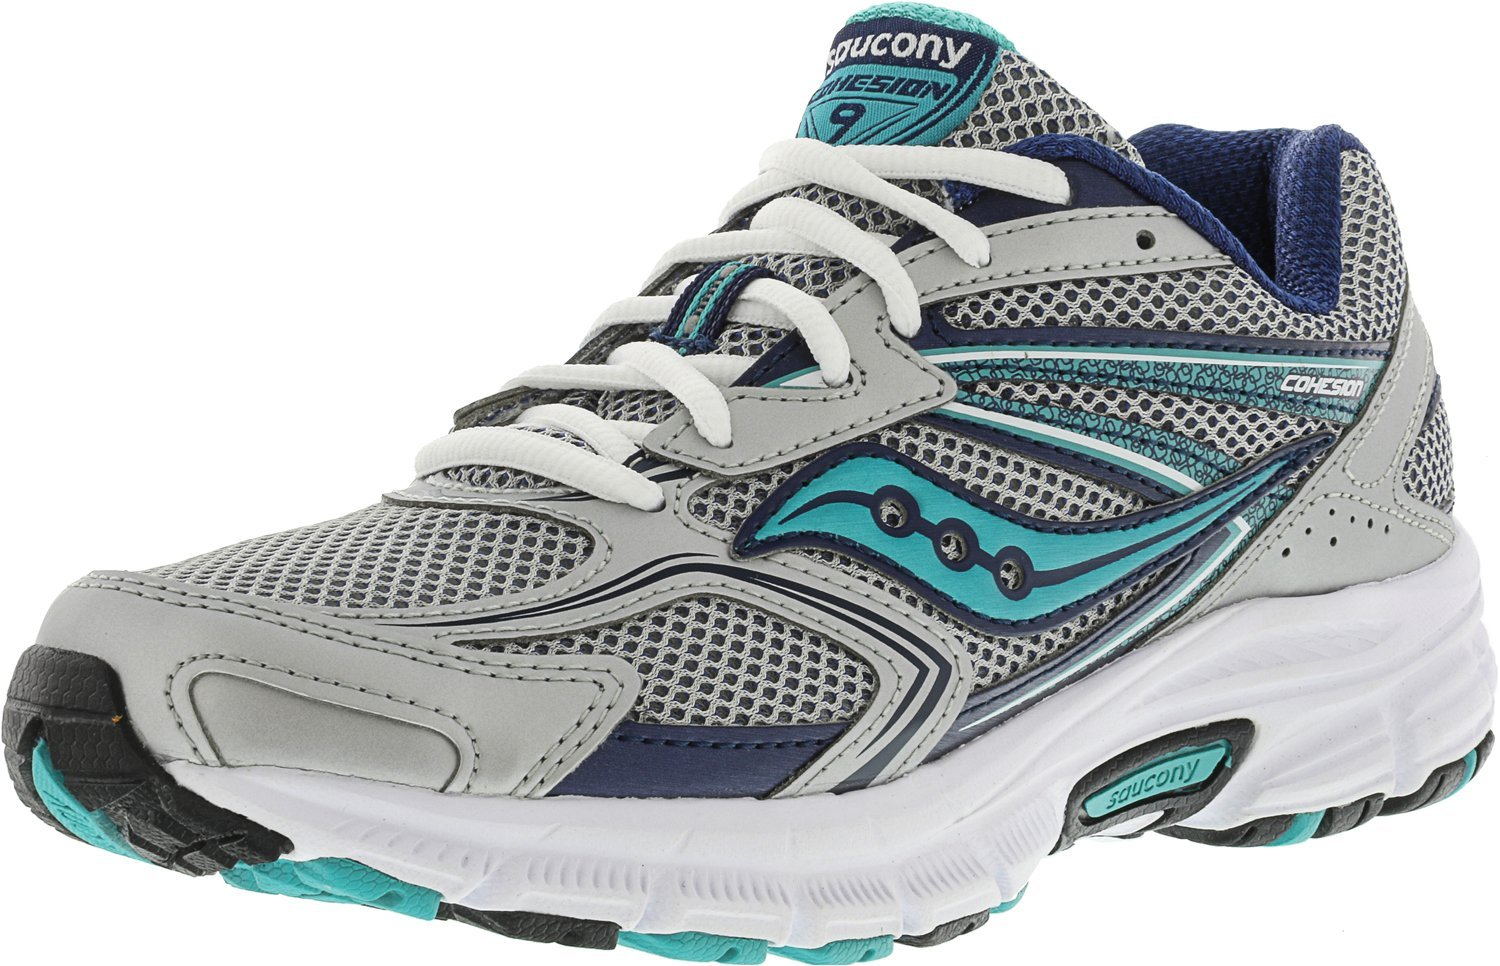 Saucony Women's Cohesion 9 Running Shoe B0713SR2HB 9 B(M) US|Silver / Navy / Teal